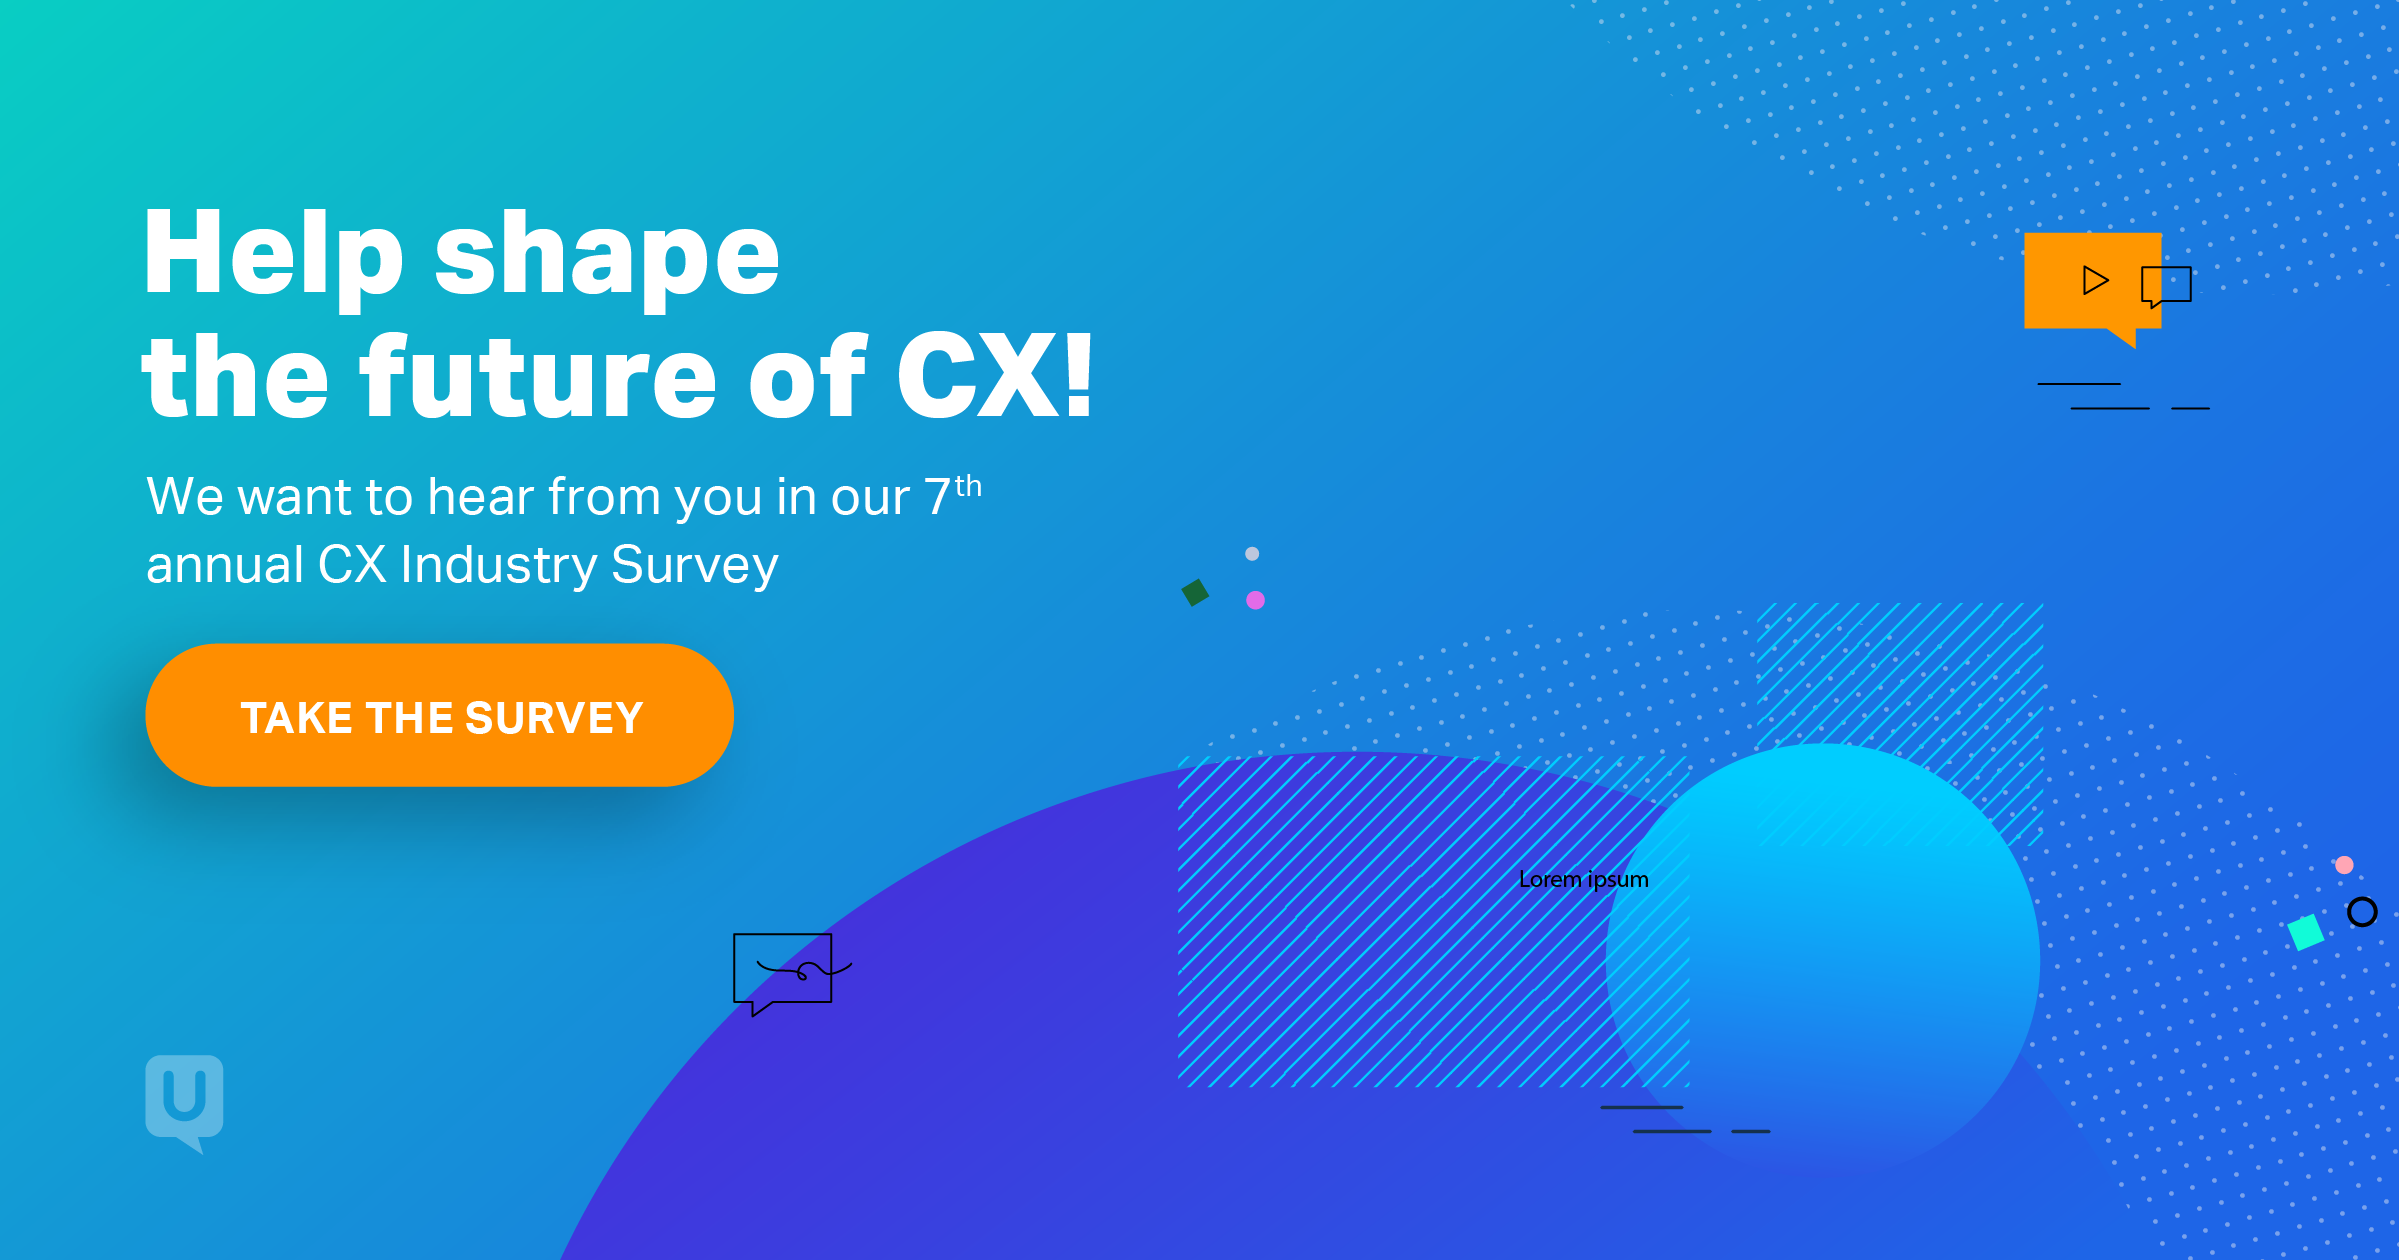 Afraid no one will take your industry survey?